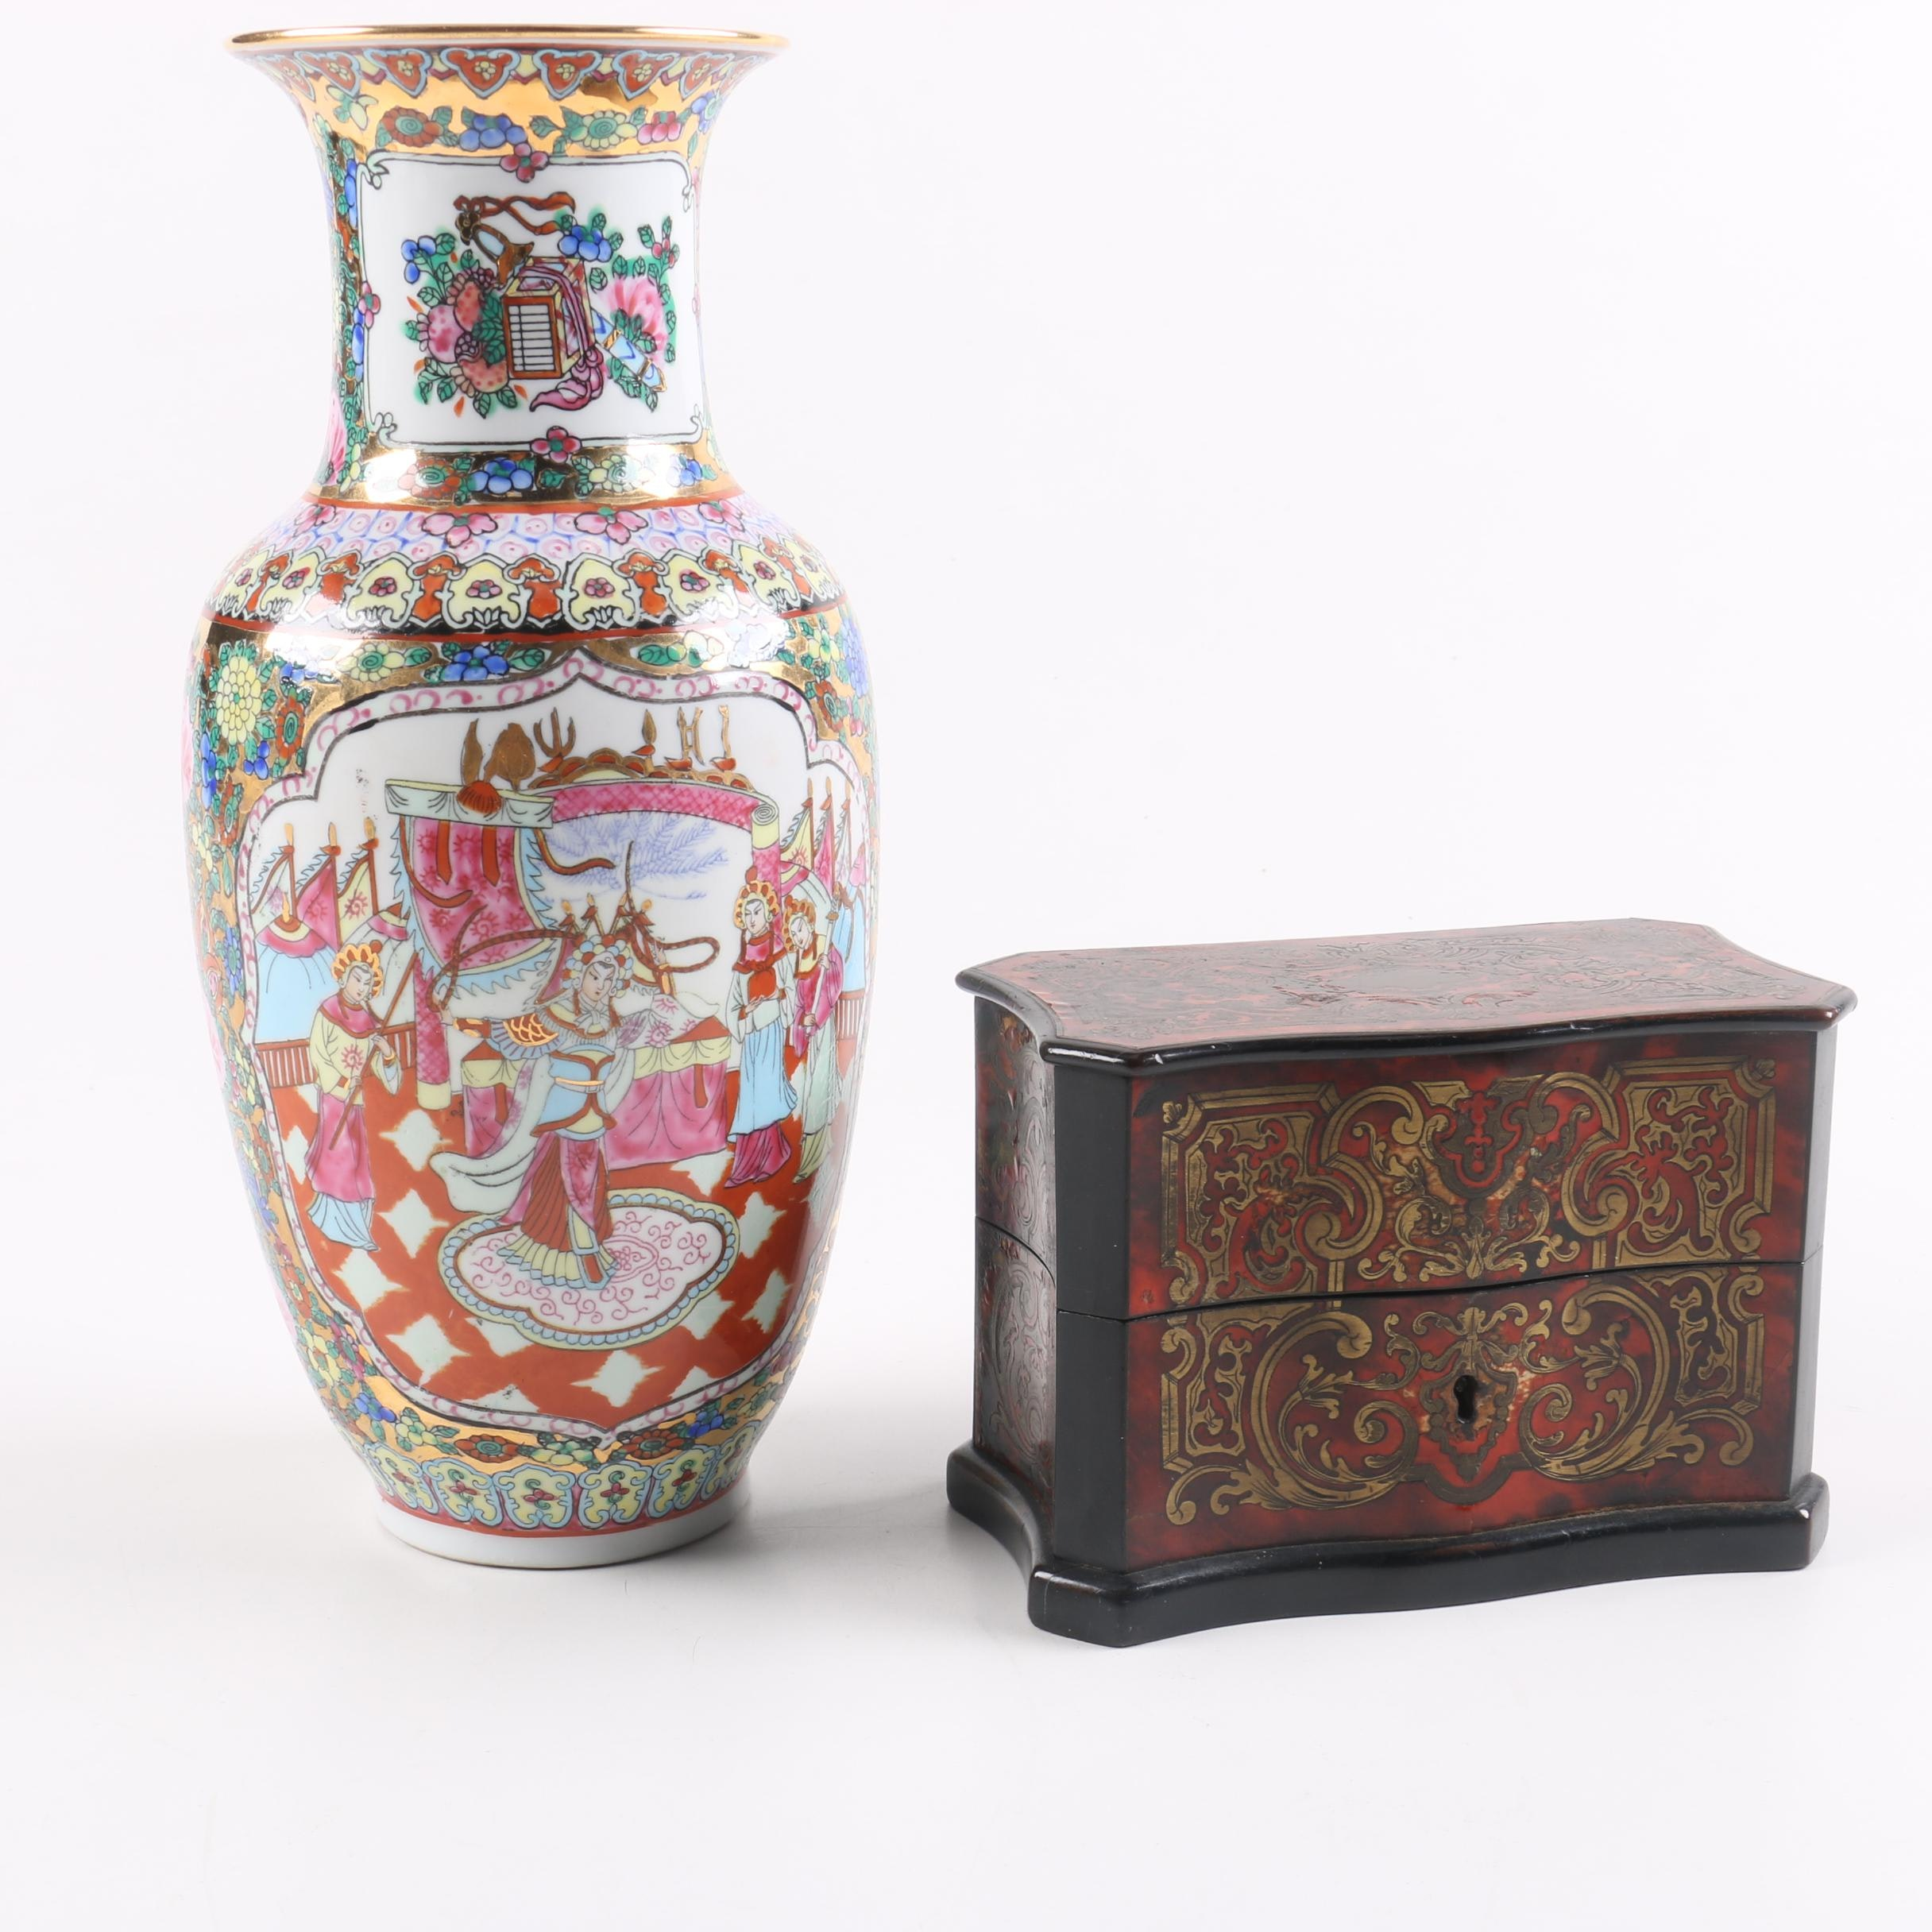 Chinese Porcelain Vase And Perfume Box